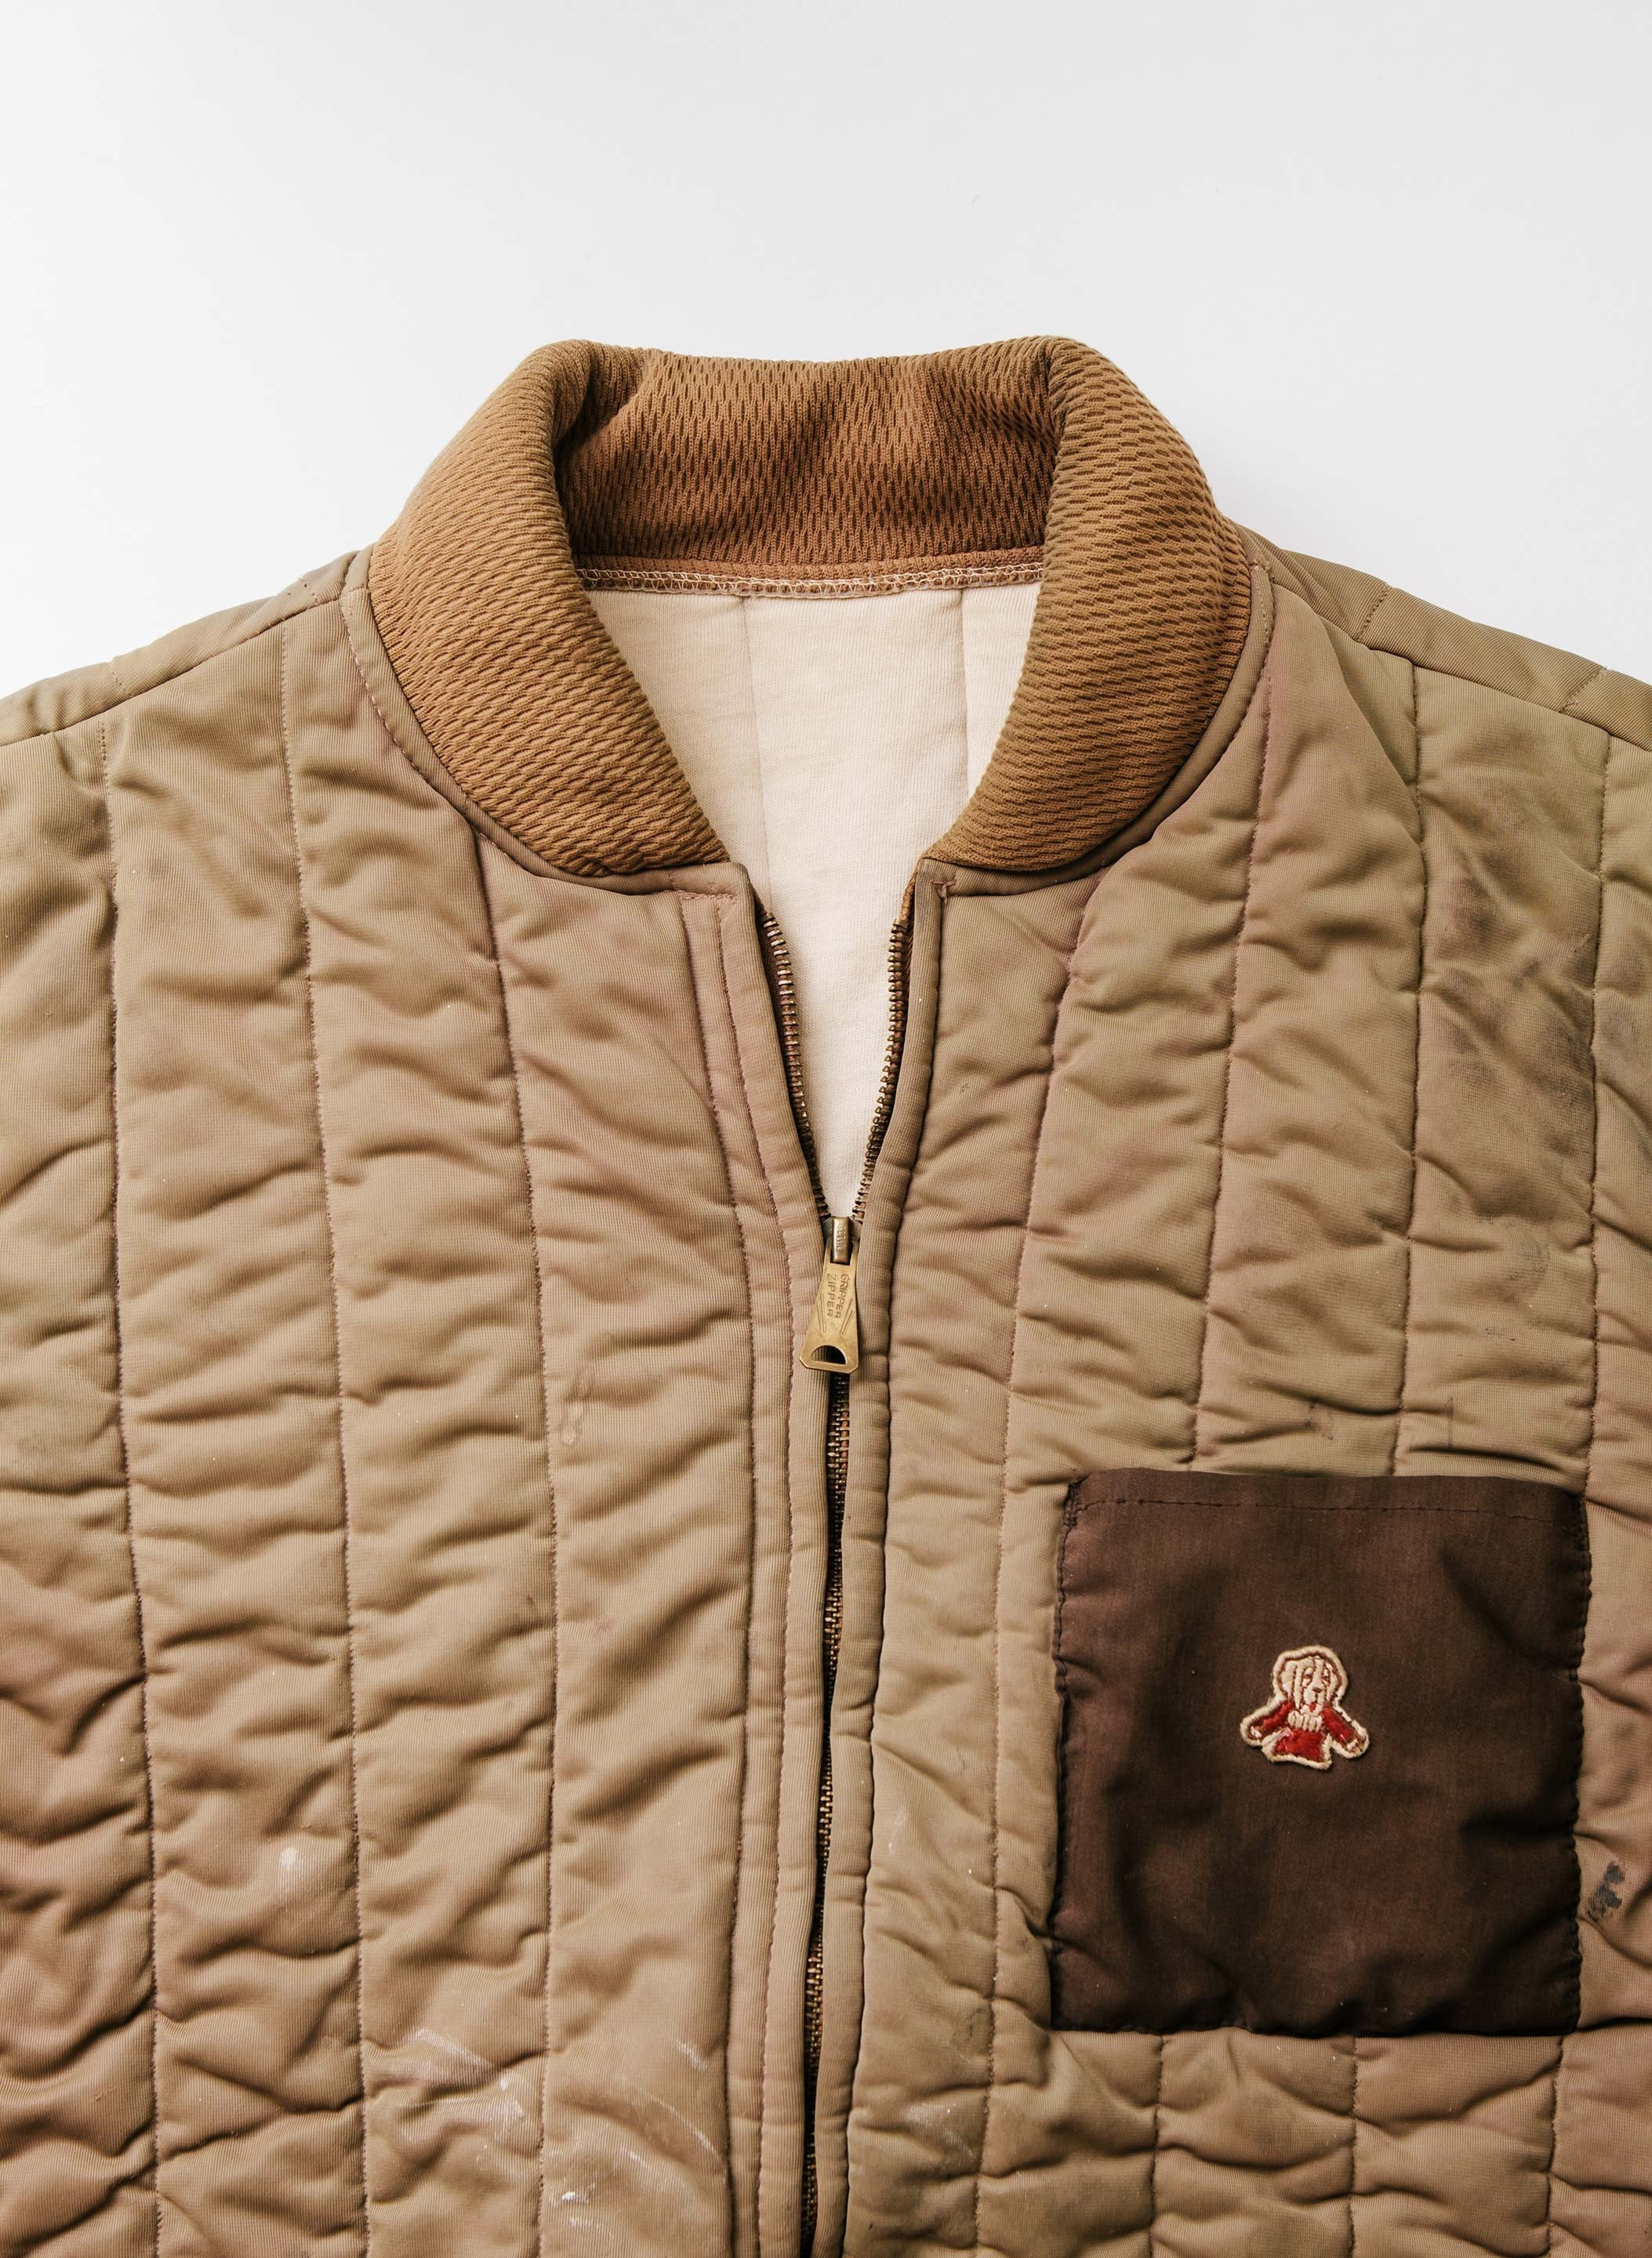 imogene + willie - wwii era quilted jacket